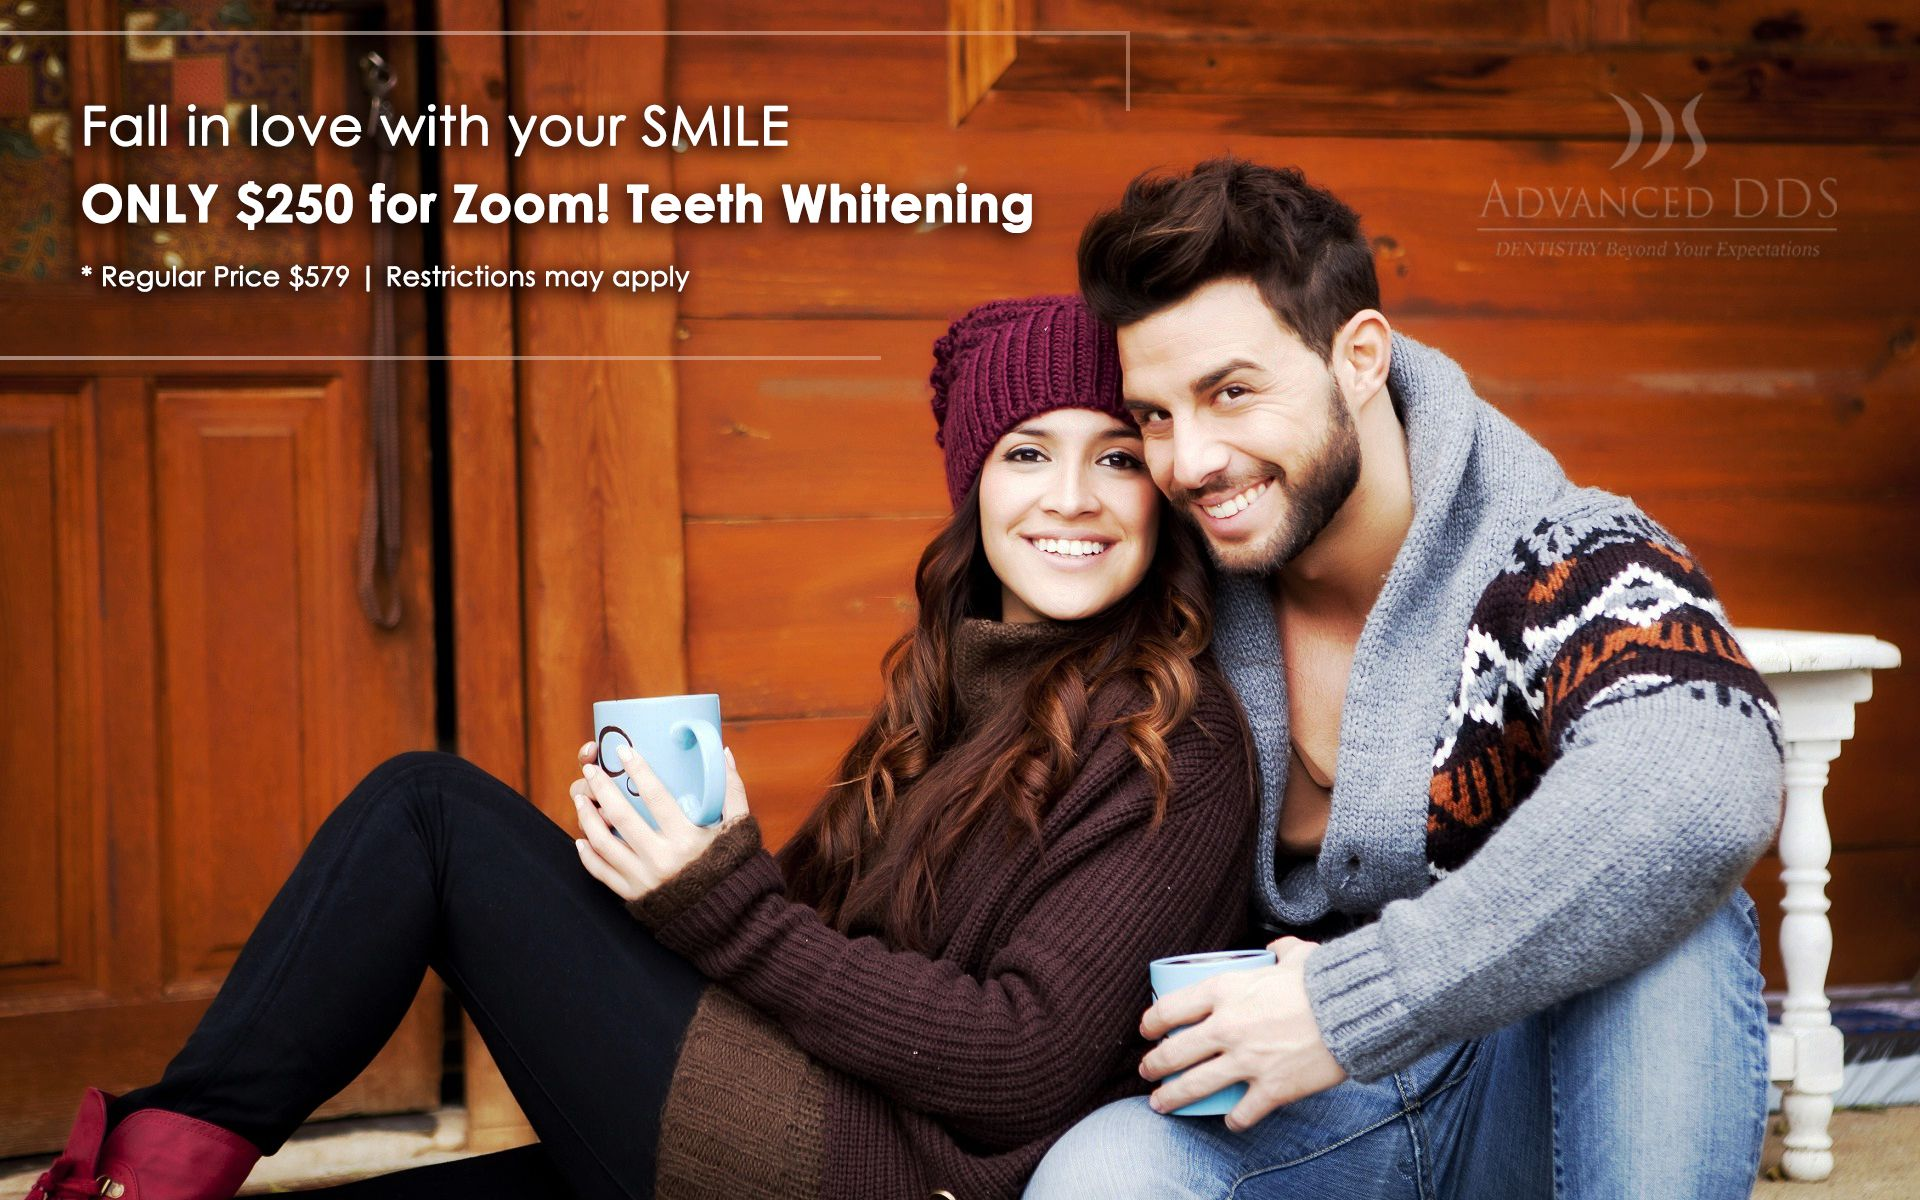 Fall Zoom! Teeth Whitening Special